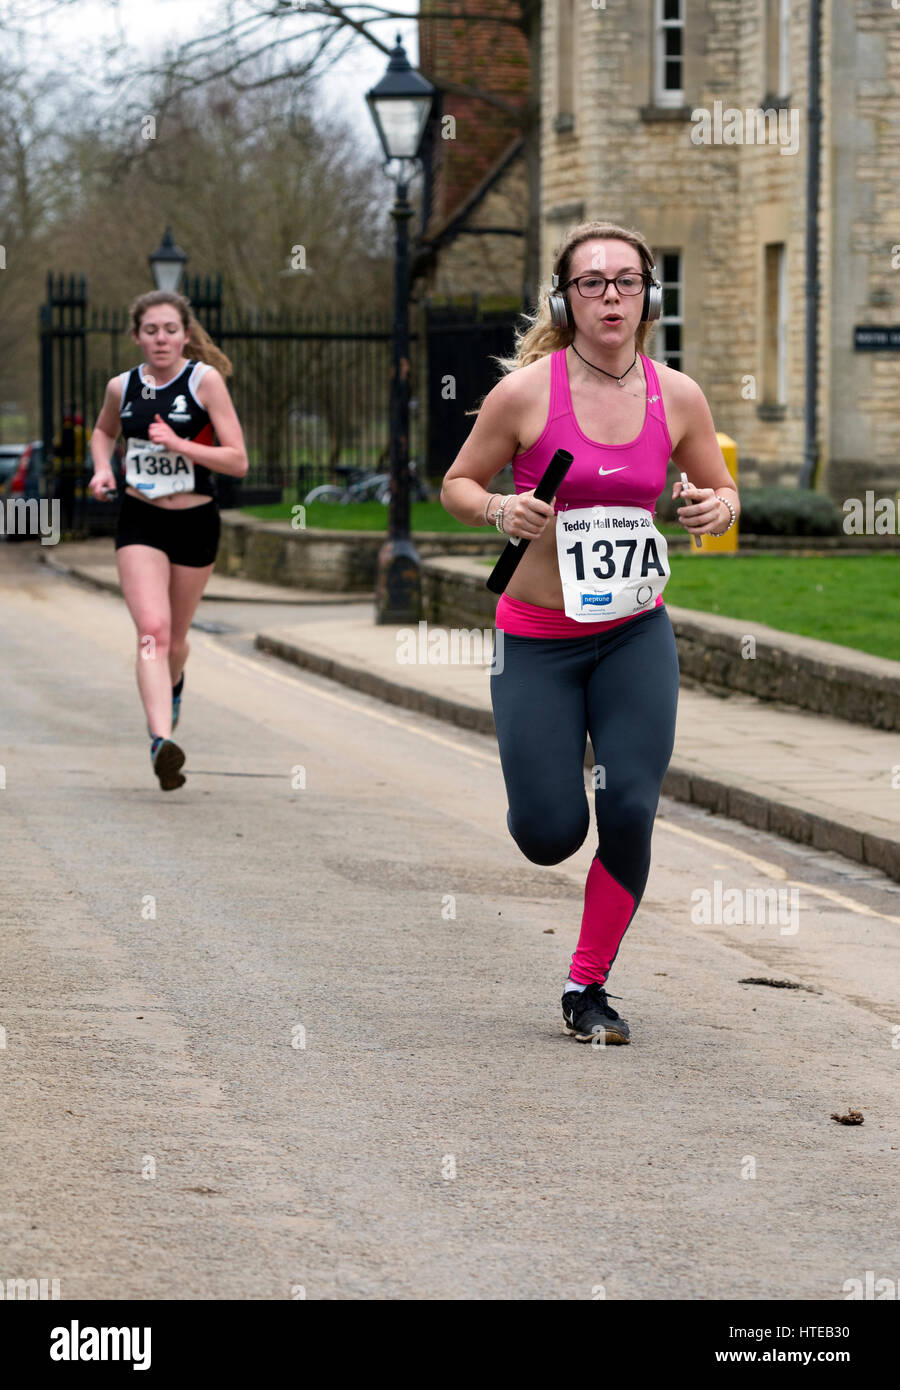 Female runners in the Teddy Hall Relays, Oxford, UK - Stock Image